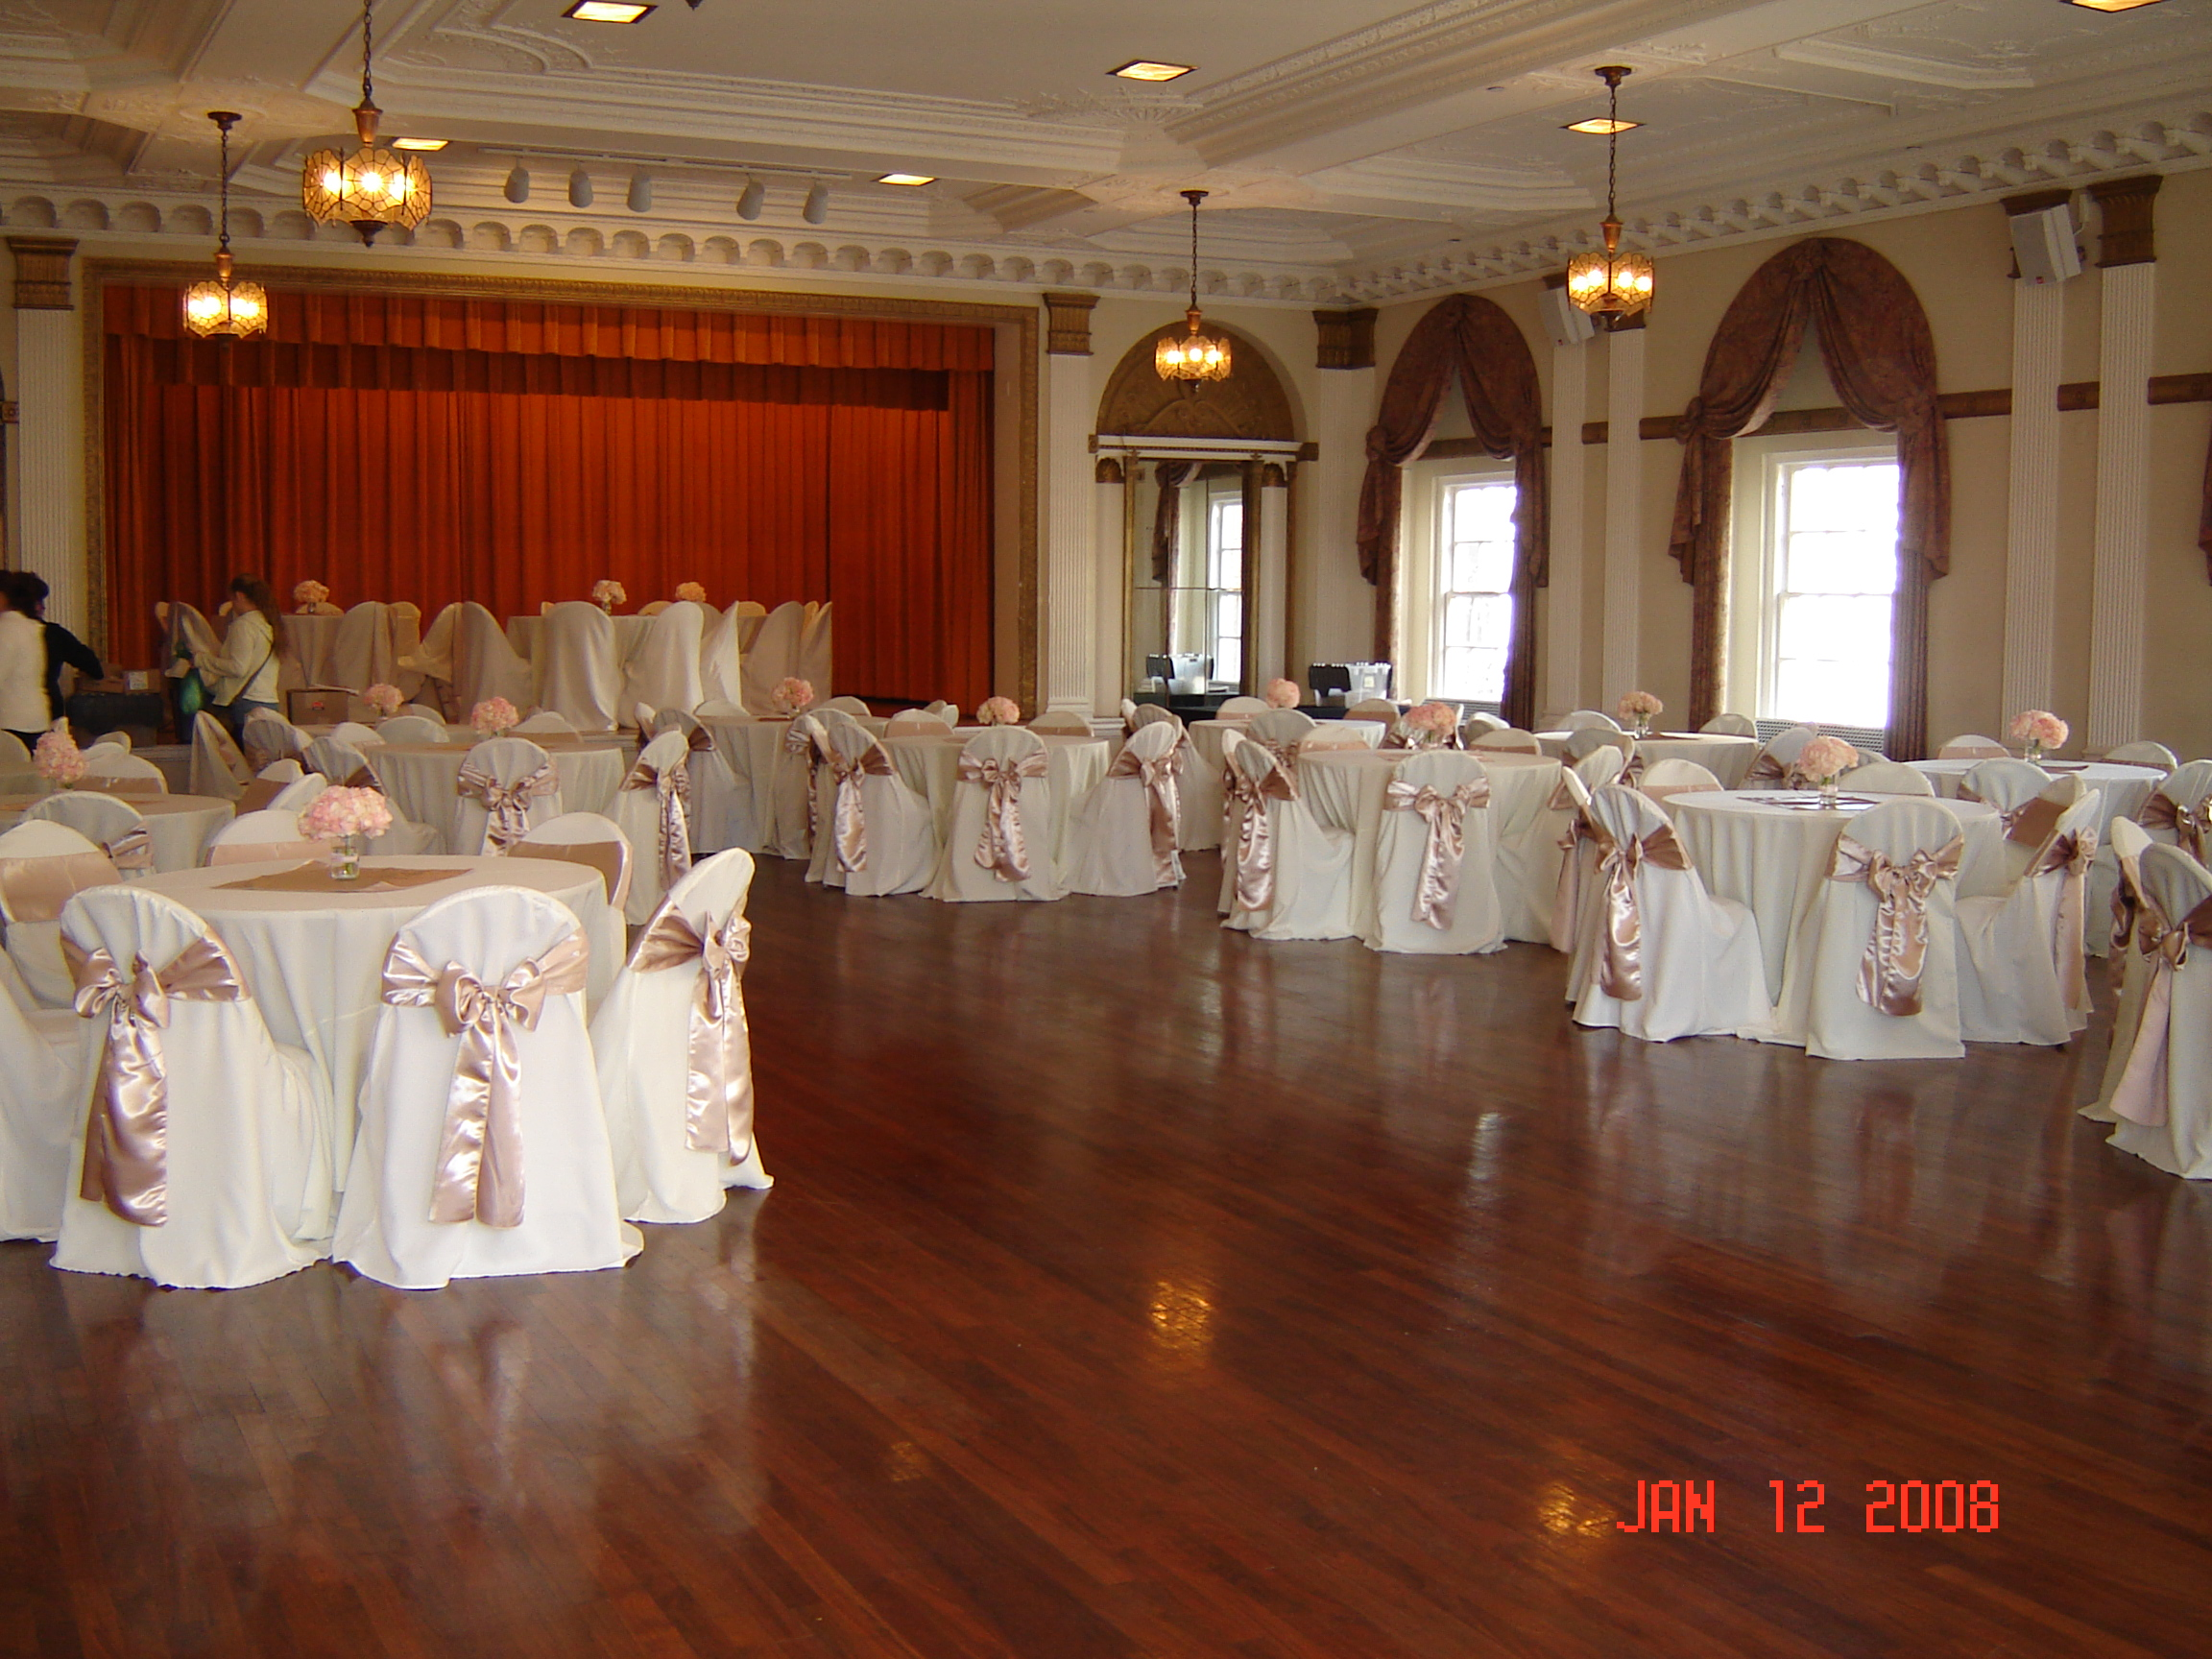 Used Banquet Chairs Simply Elegant Weddings Chair Cover Rentals Universal Polyester